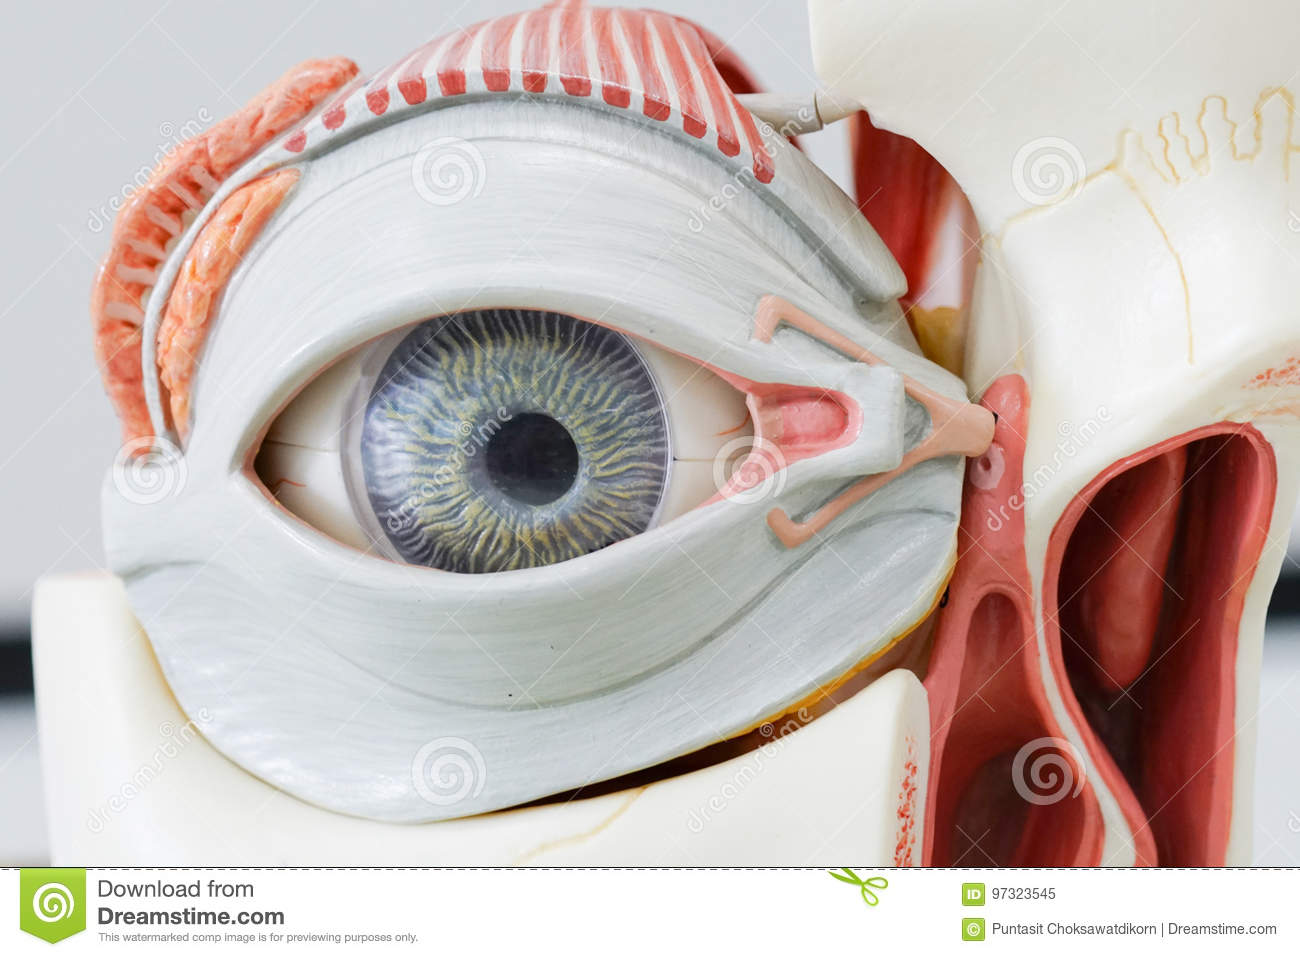 Human eye model stock image. Image of iris, healthy, body - 97323545